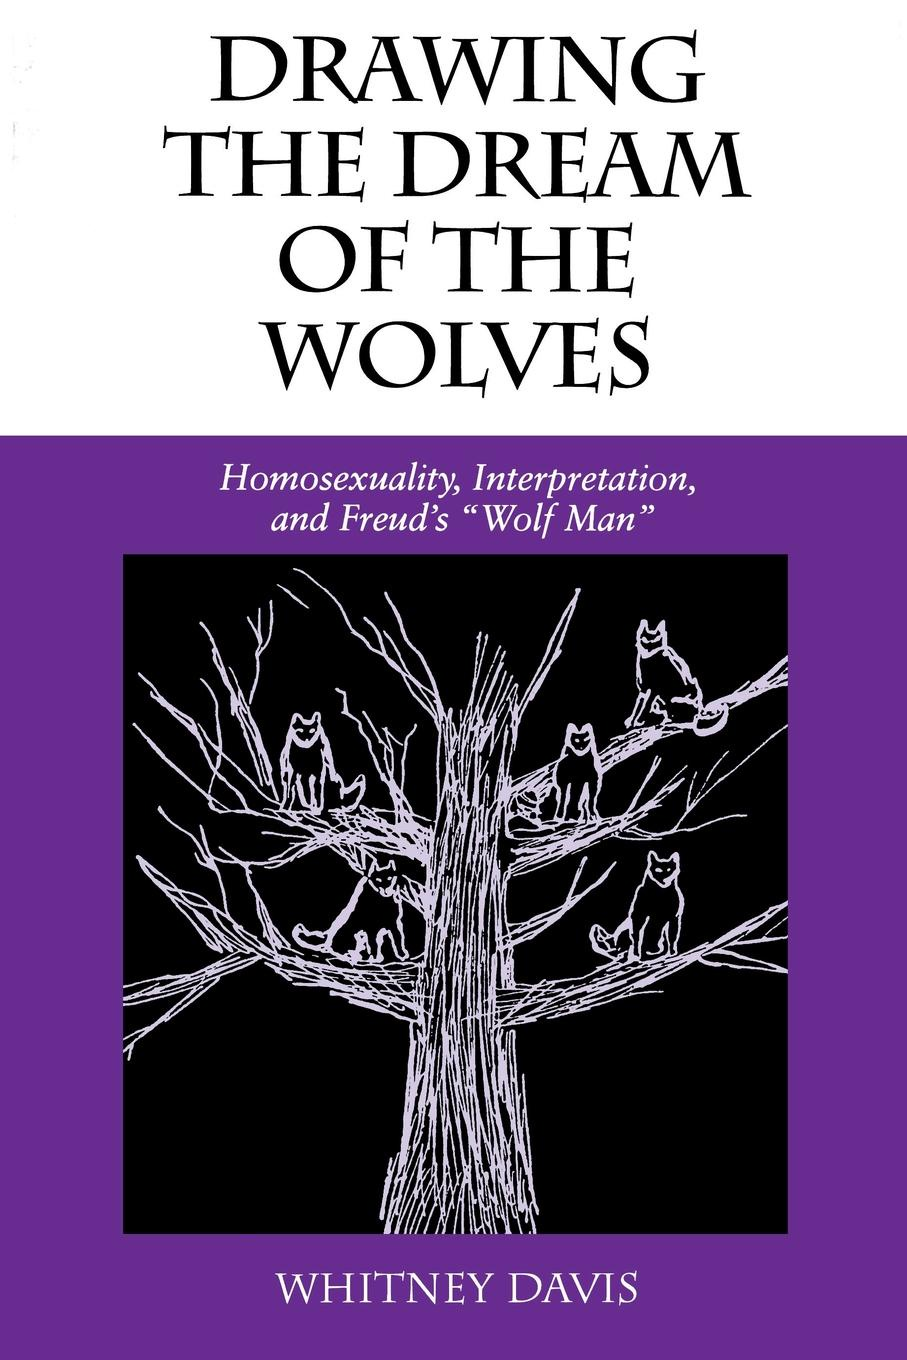 цены на Whitney Davis Drawing the Dream of the Wolves. Homosexuality, Interpretation, and Freud's